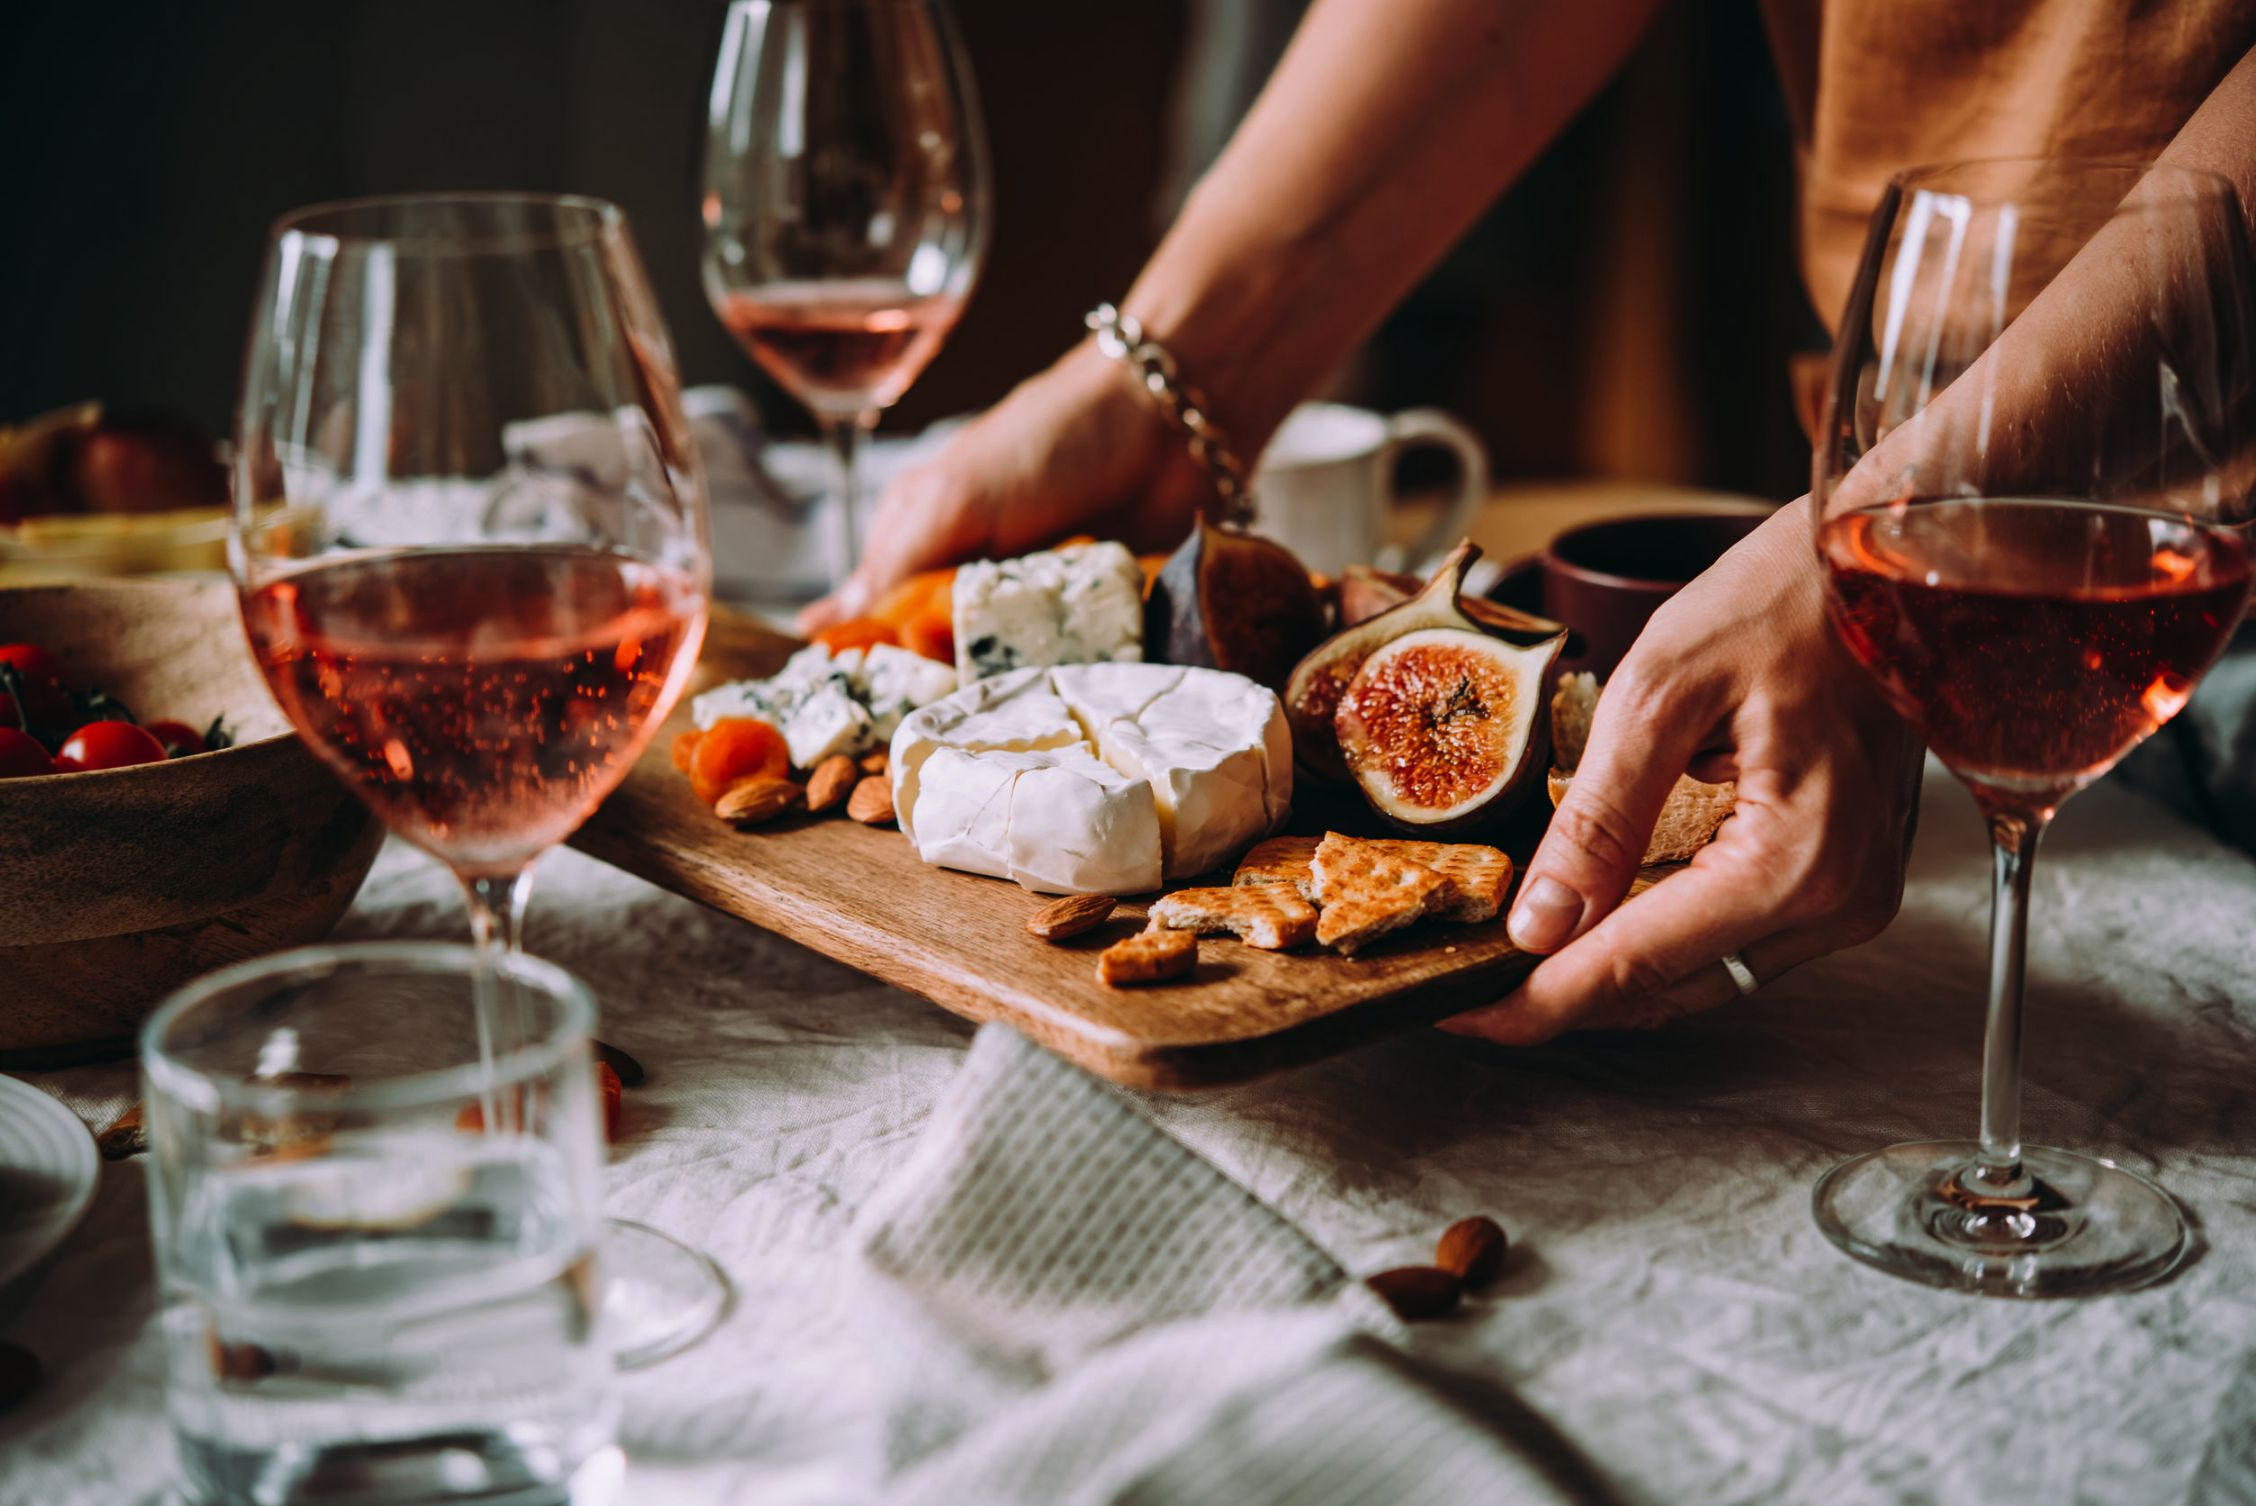 Wine and cheese being served on a tray. Both can trigger symptoms in mast cell activation syndrome / MCAS